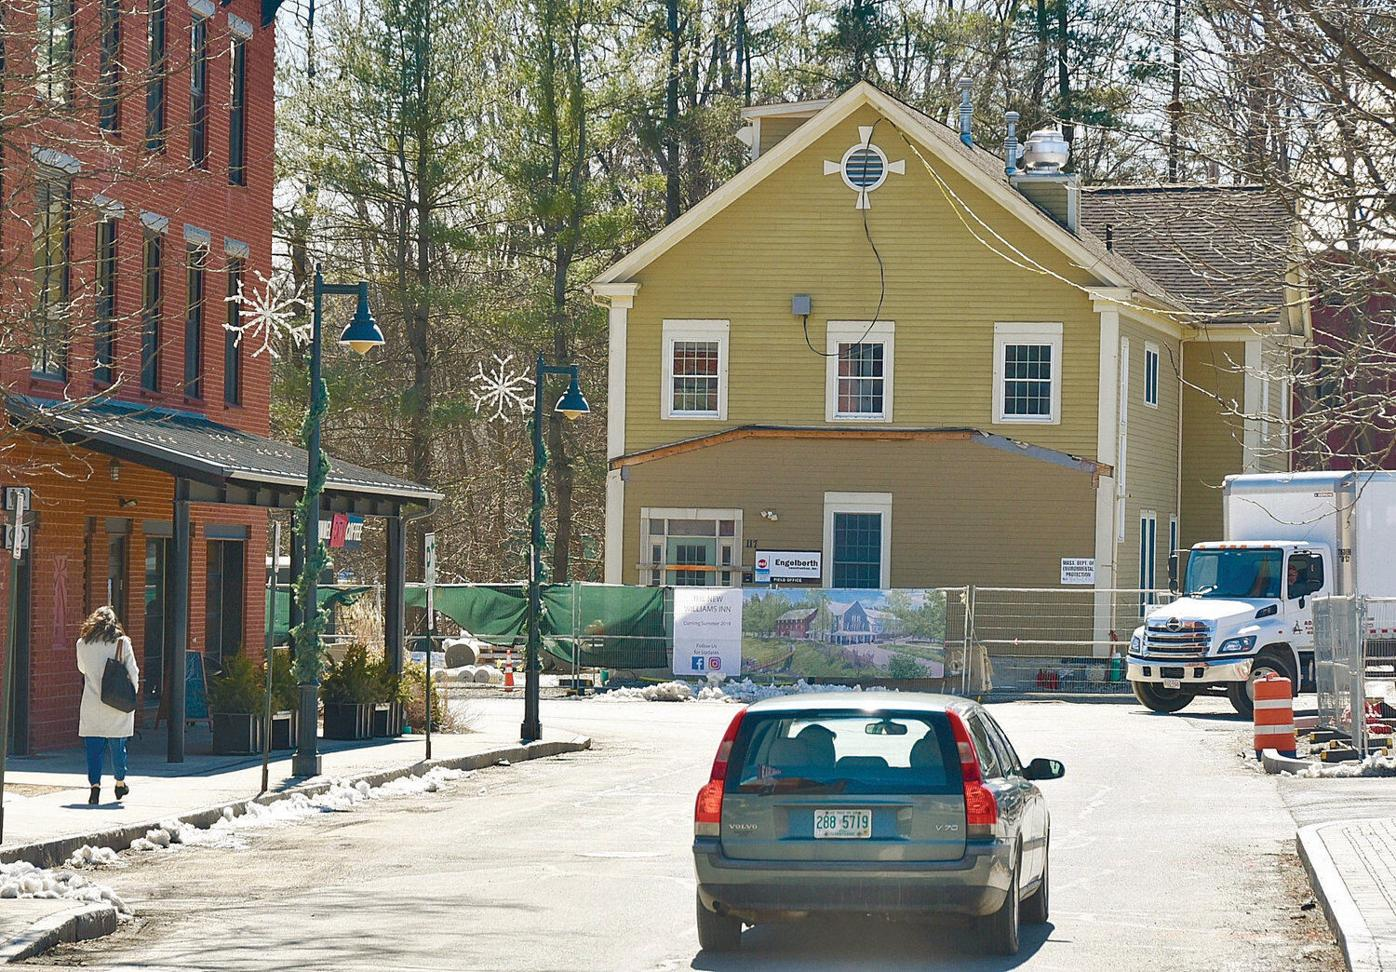 Final stages near for new Williams Inn project